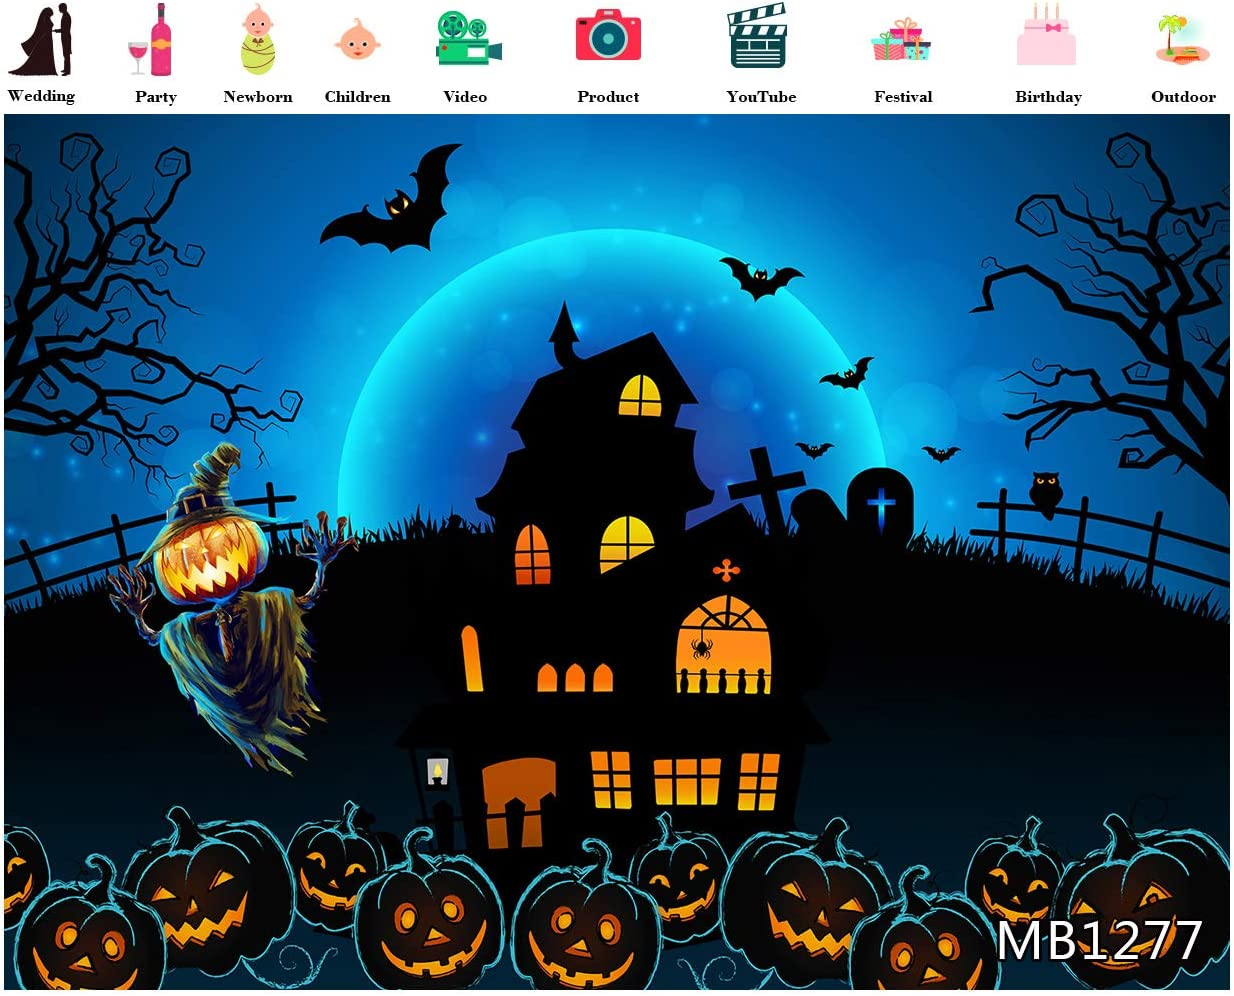 LB 10x8ft Halloween Pumpkin Themed Backdrop for Photography Horror Night Fairy Tale Castle Background for Party Decorations Witch and Bat Backdrop for Banner Photo Booth Backdrop Props